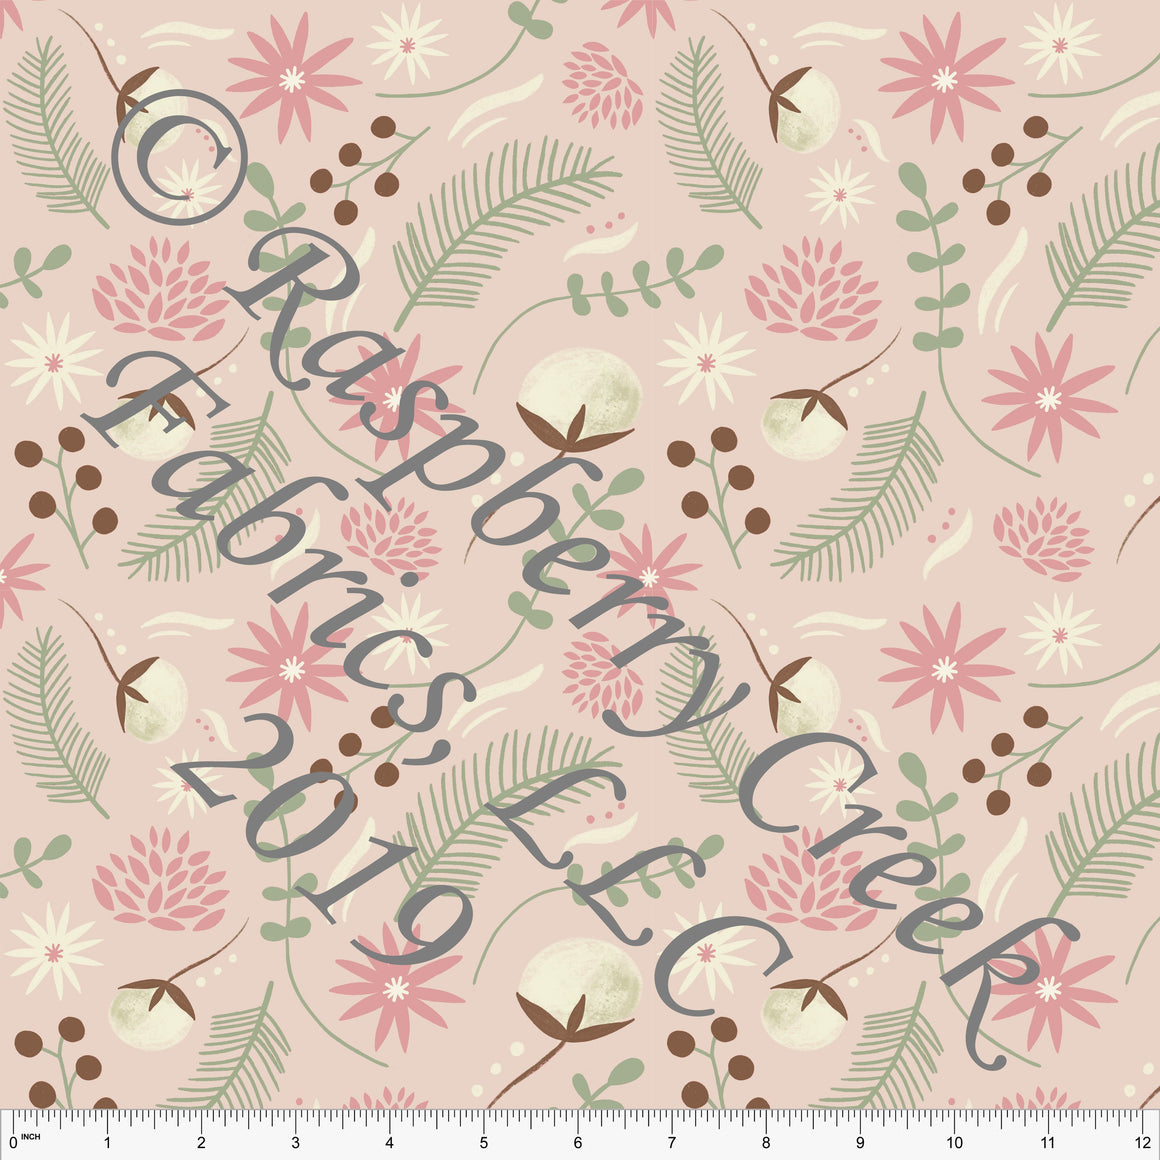 Light Blush Cream Salmon Brown and Bright Sage Sewing Floral 4 Way Stretch Double Brushed Poly, By Stephani MacLeod for CLUB Fabrics - Raspberry Creek Fabrics